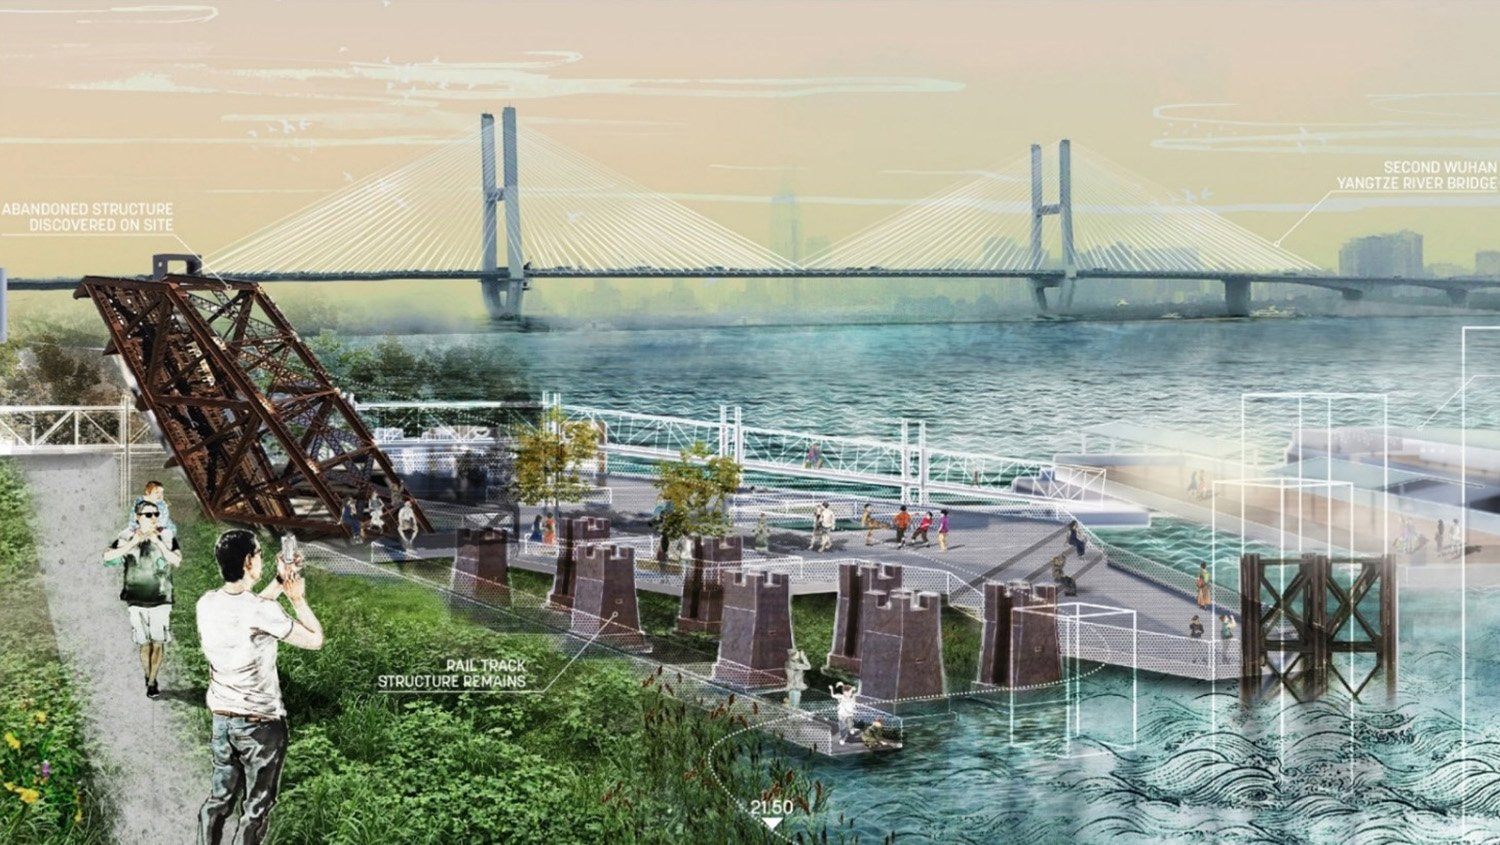 REPURPOSING INDUSTRIAL ELEMENTS AS PUBLIC ART: When water levels are low, the park reveals its industrial heritage with abandoned railyards and freight train terminals recalling the riverfront's previous u SASAKI}